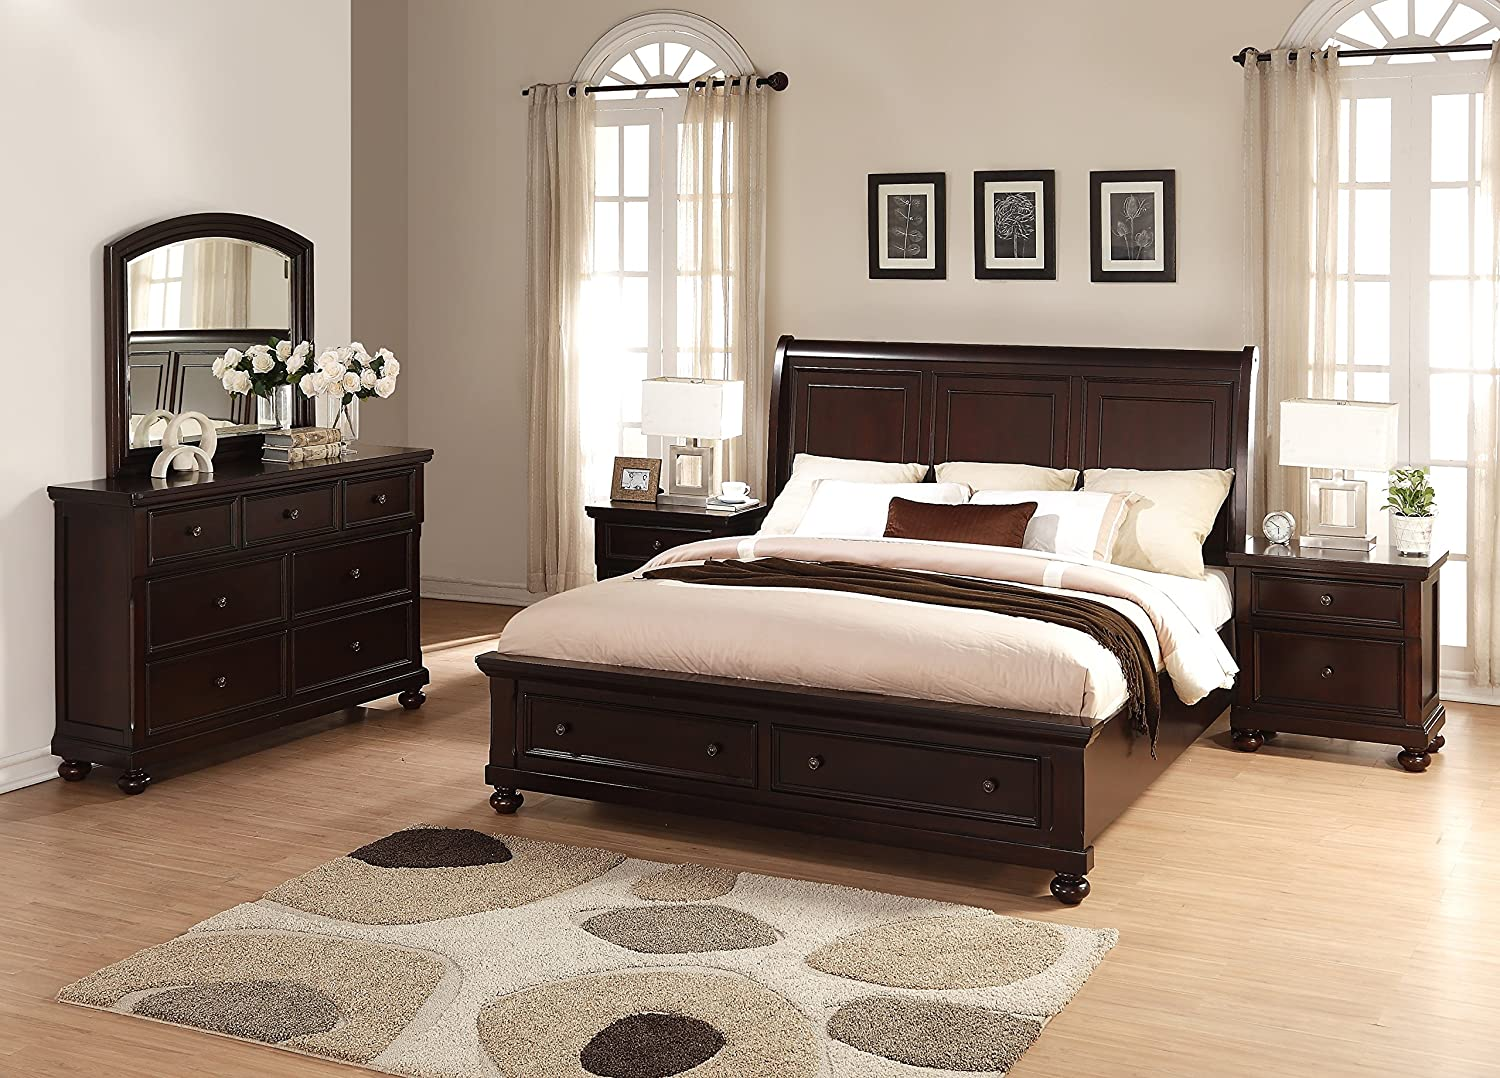 Exceptionnel Amazon.com: Roundhill Furniture Brishland Storage Bedroom Set Includes  Dresser, Mirror And 2 Nighstands, King Bed, Rustic Cherry: Kitchen U0026 Dining